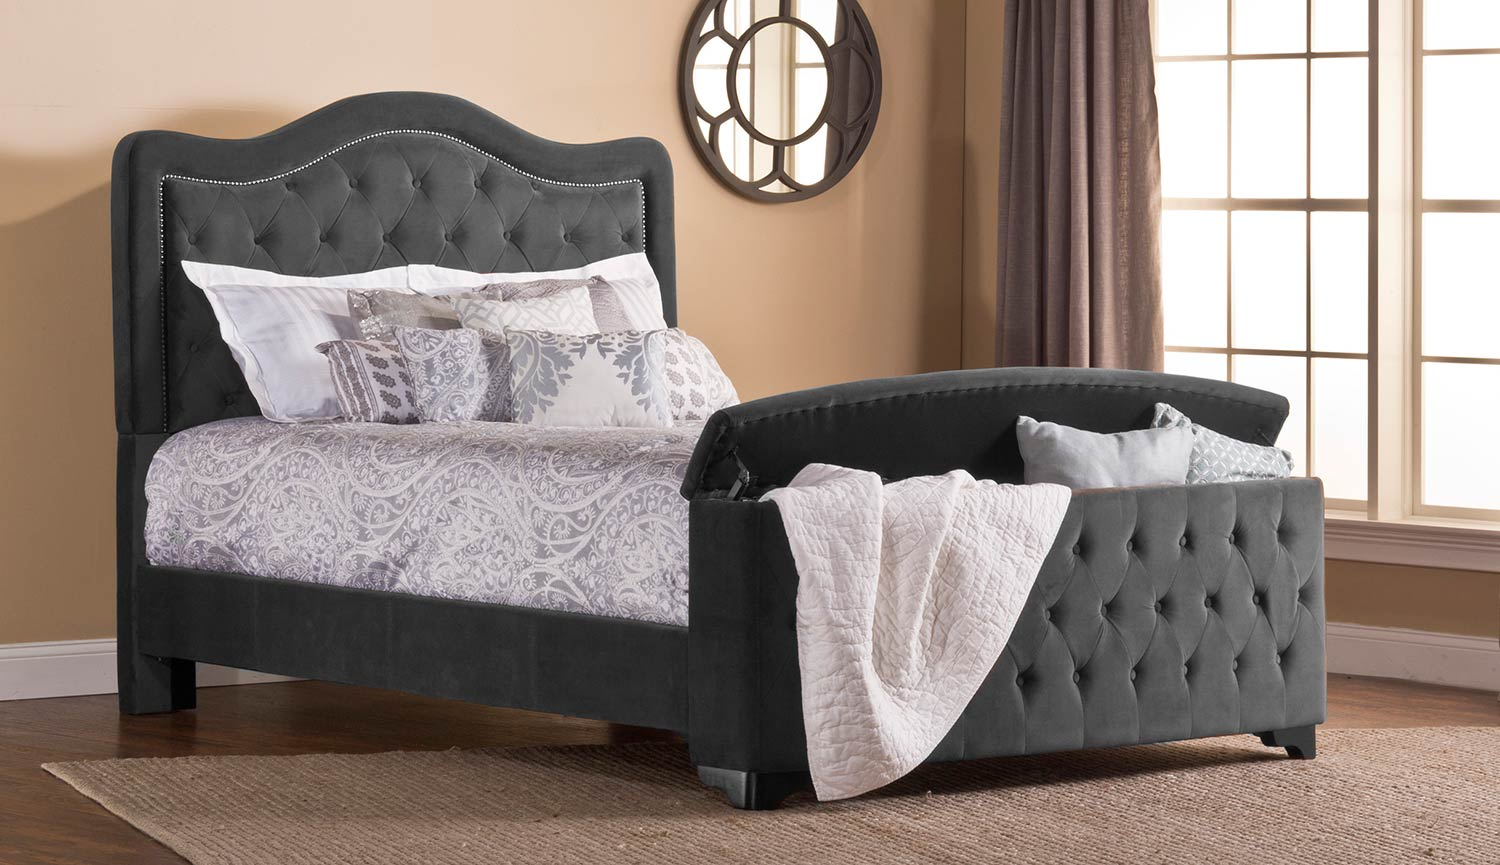 Hillsdale Trieste Tufted Upholstered Bed - Storage Footboard - Pewter